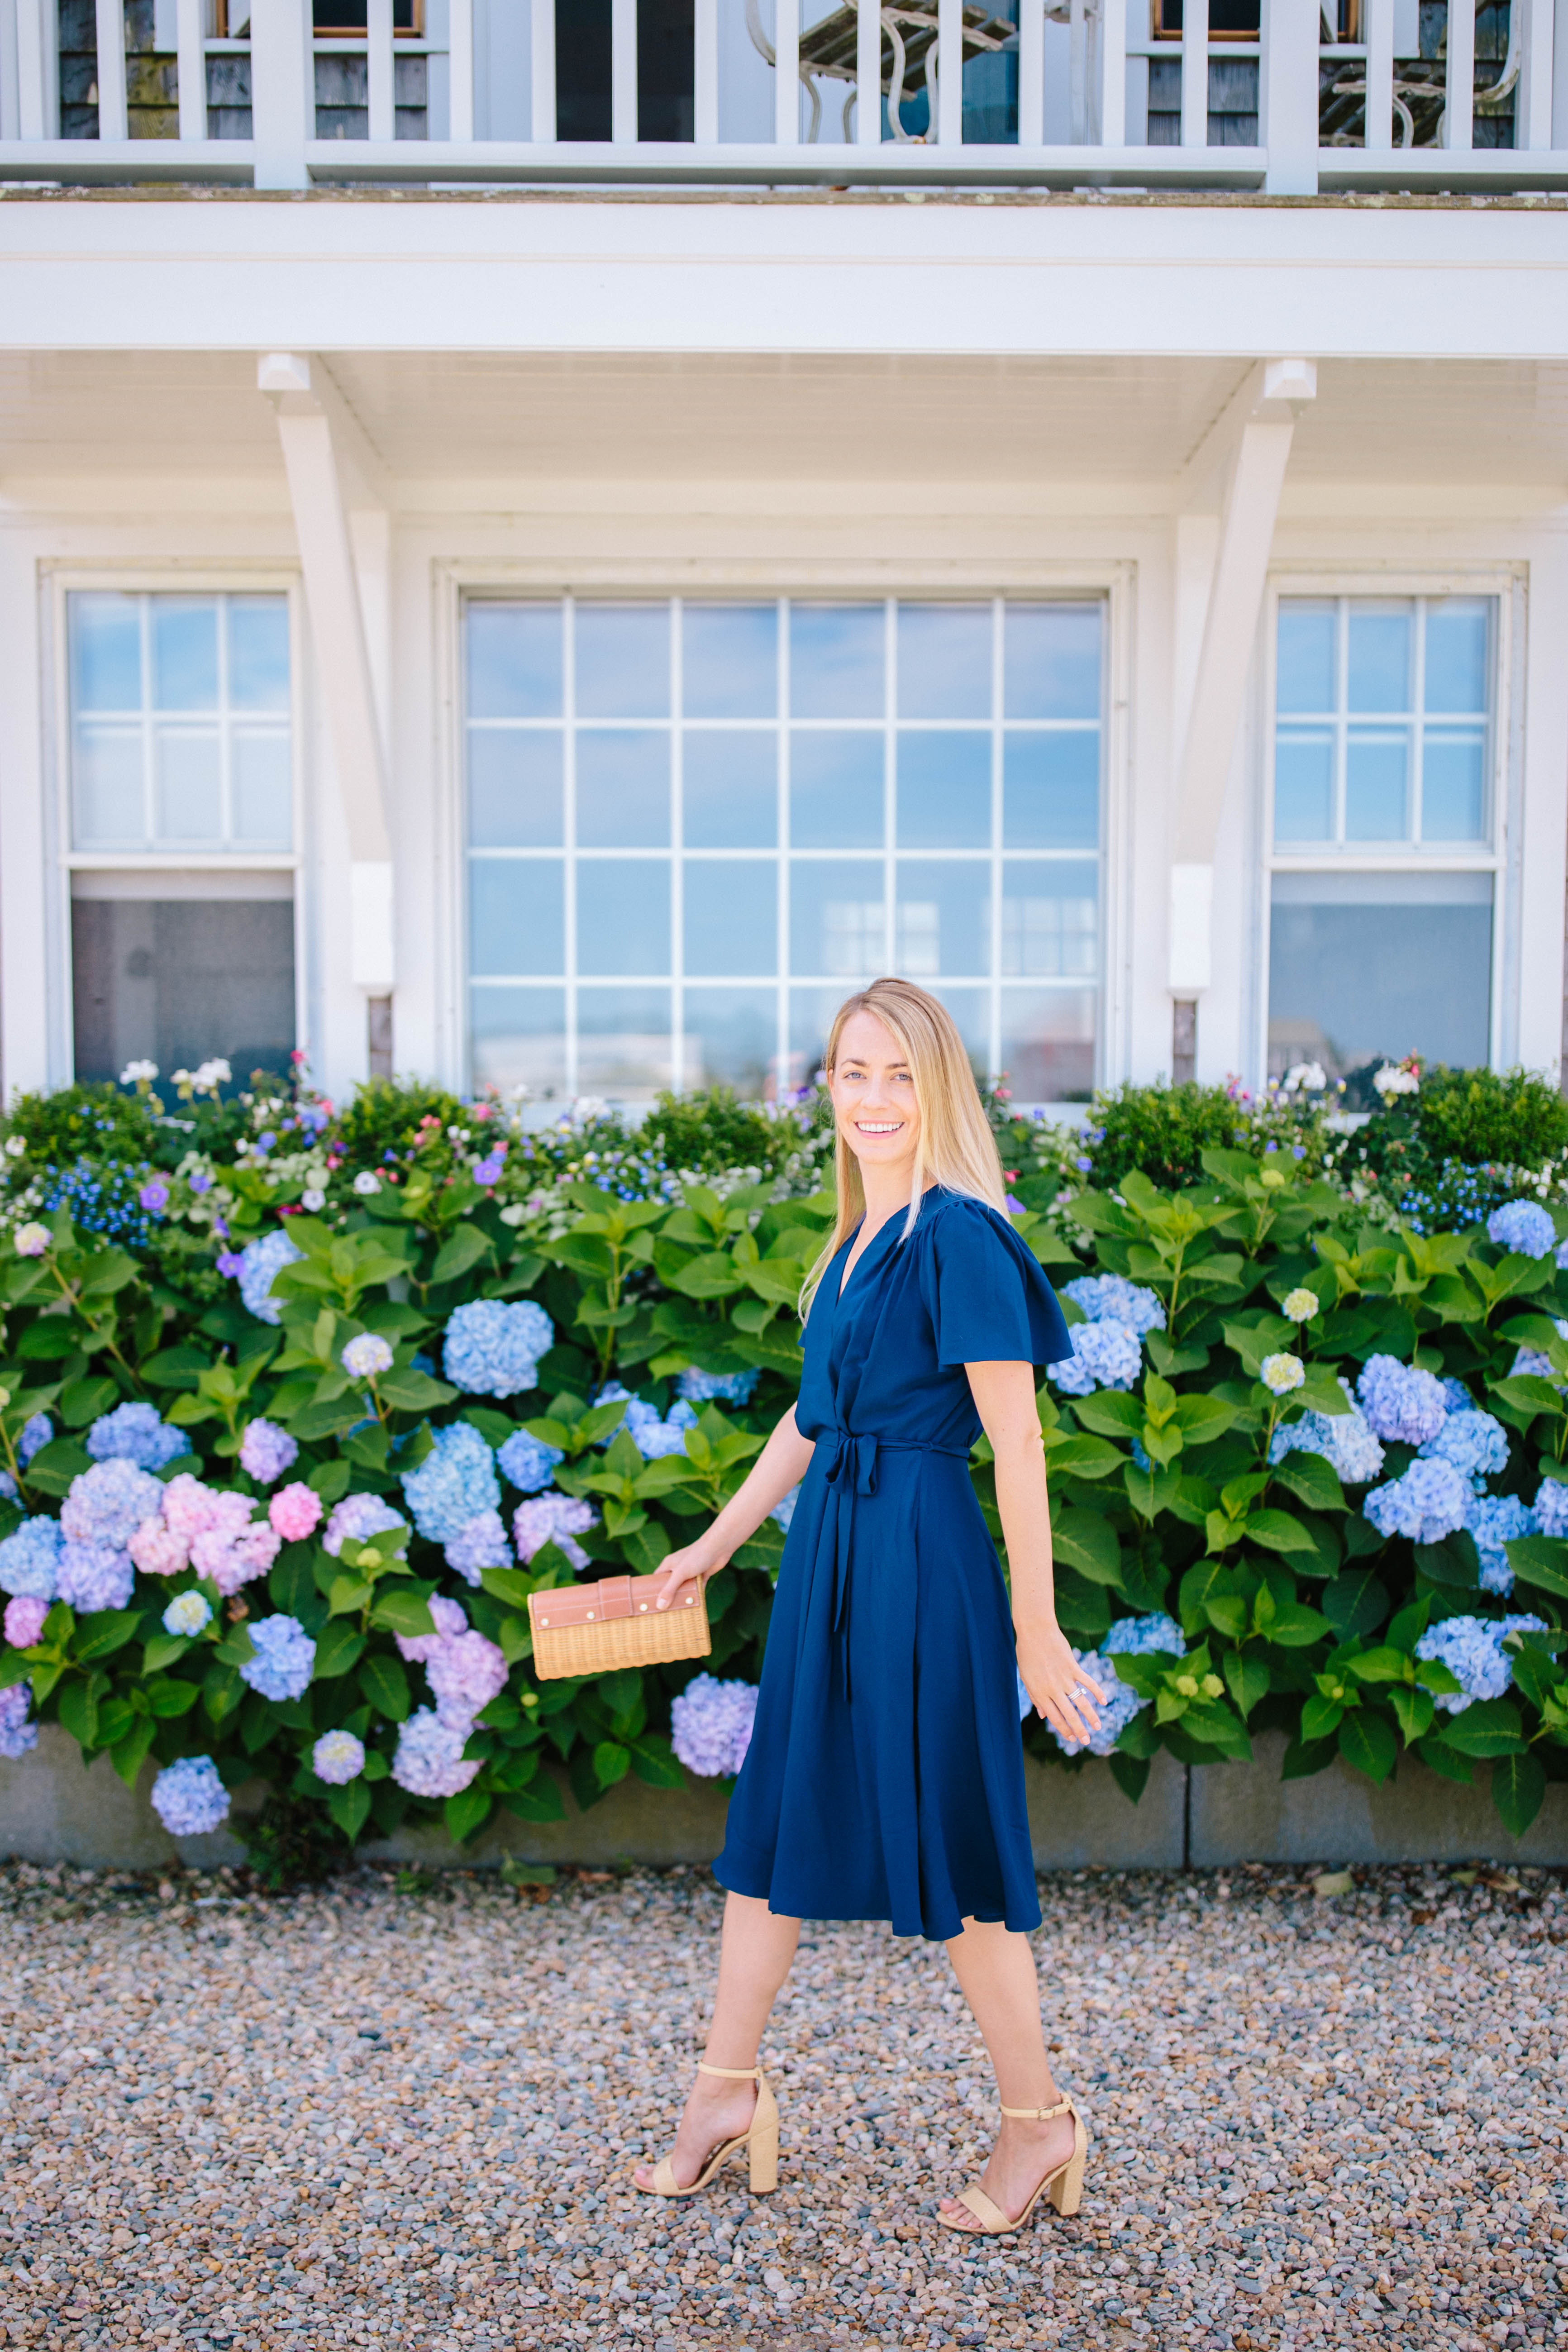 Shop this Dress on Sale Now | Summer Wedding Guest Dresses for 2019 | Rhyme & Reason